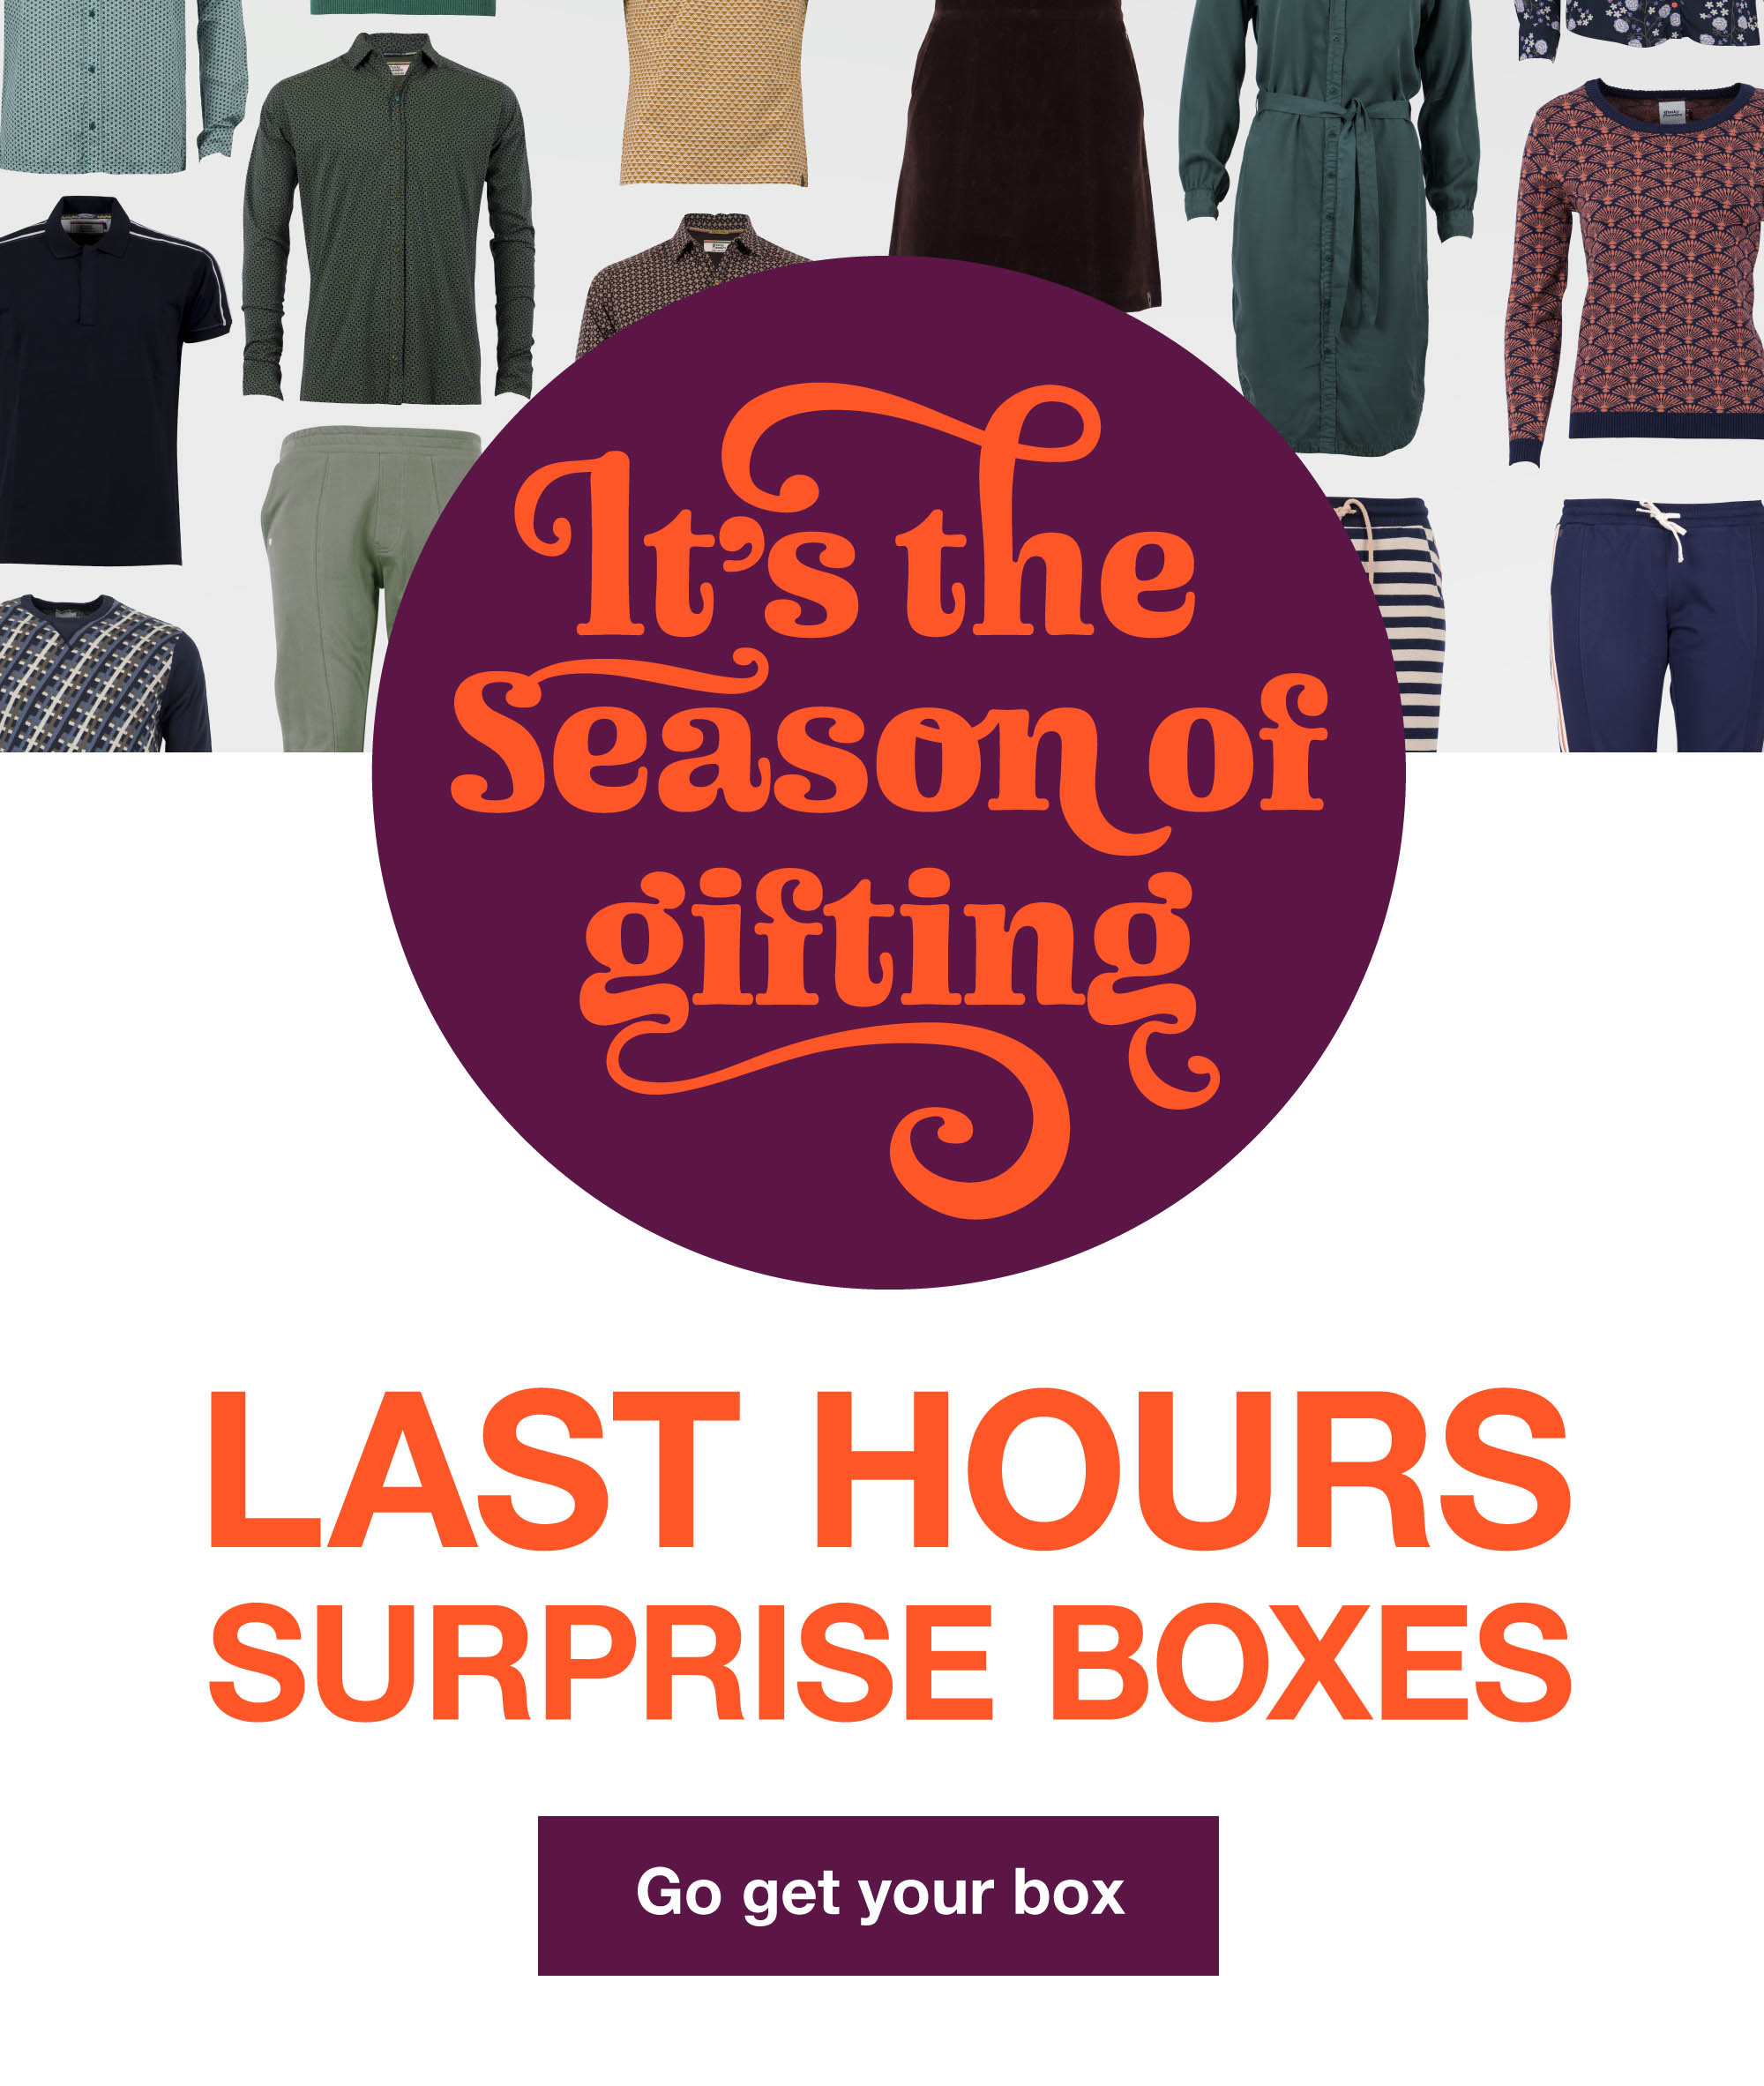 Surprise boxes last hours!